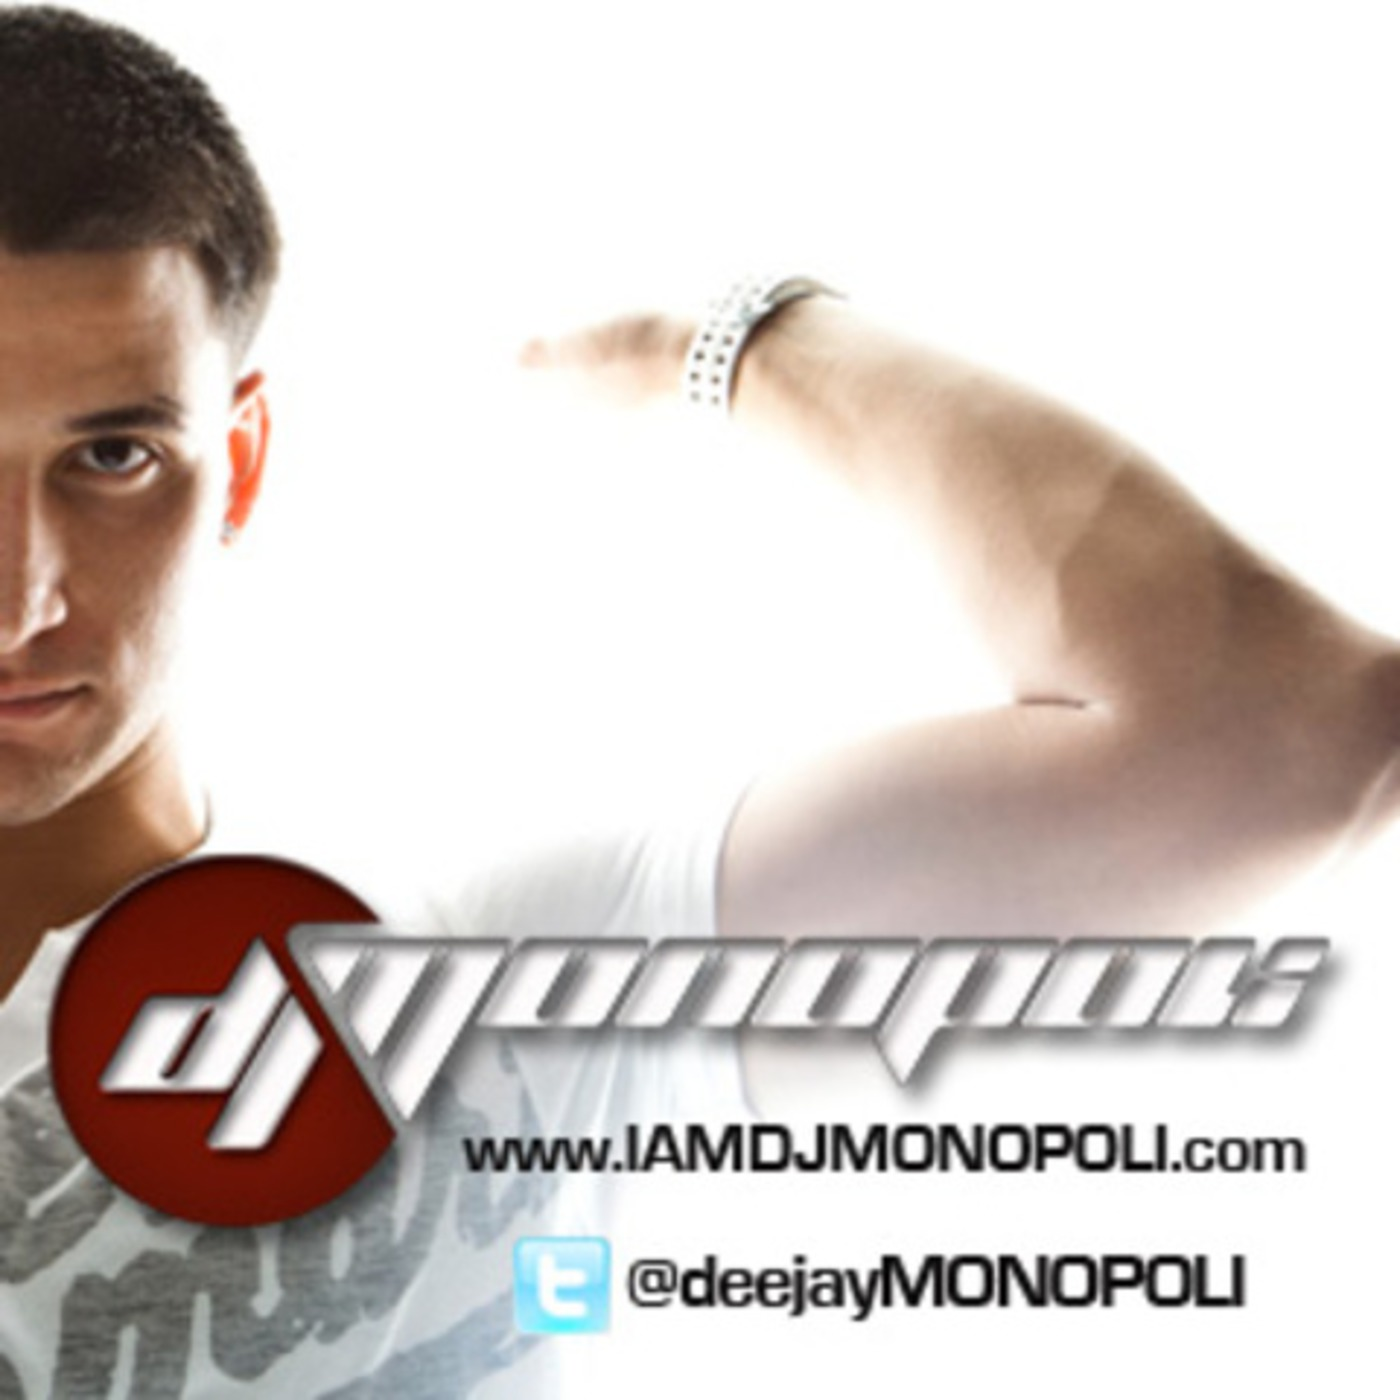 DJ Monopoli's Official Podcast